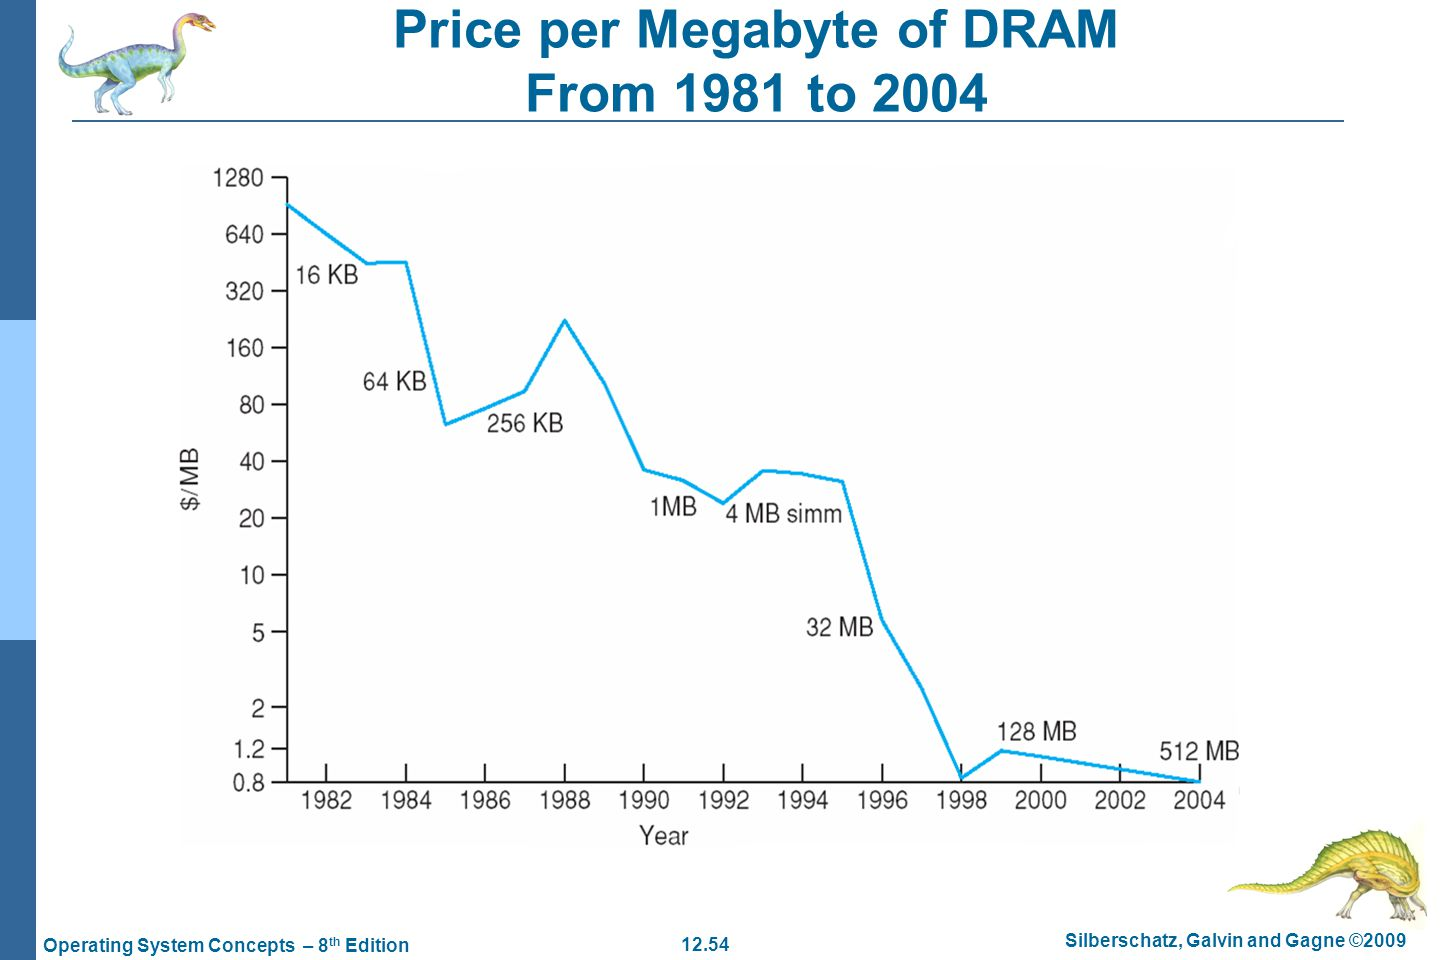 Price per Megabyte of DRAM From 1981 to 2004